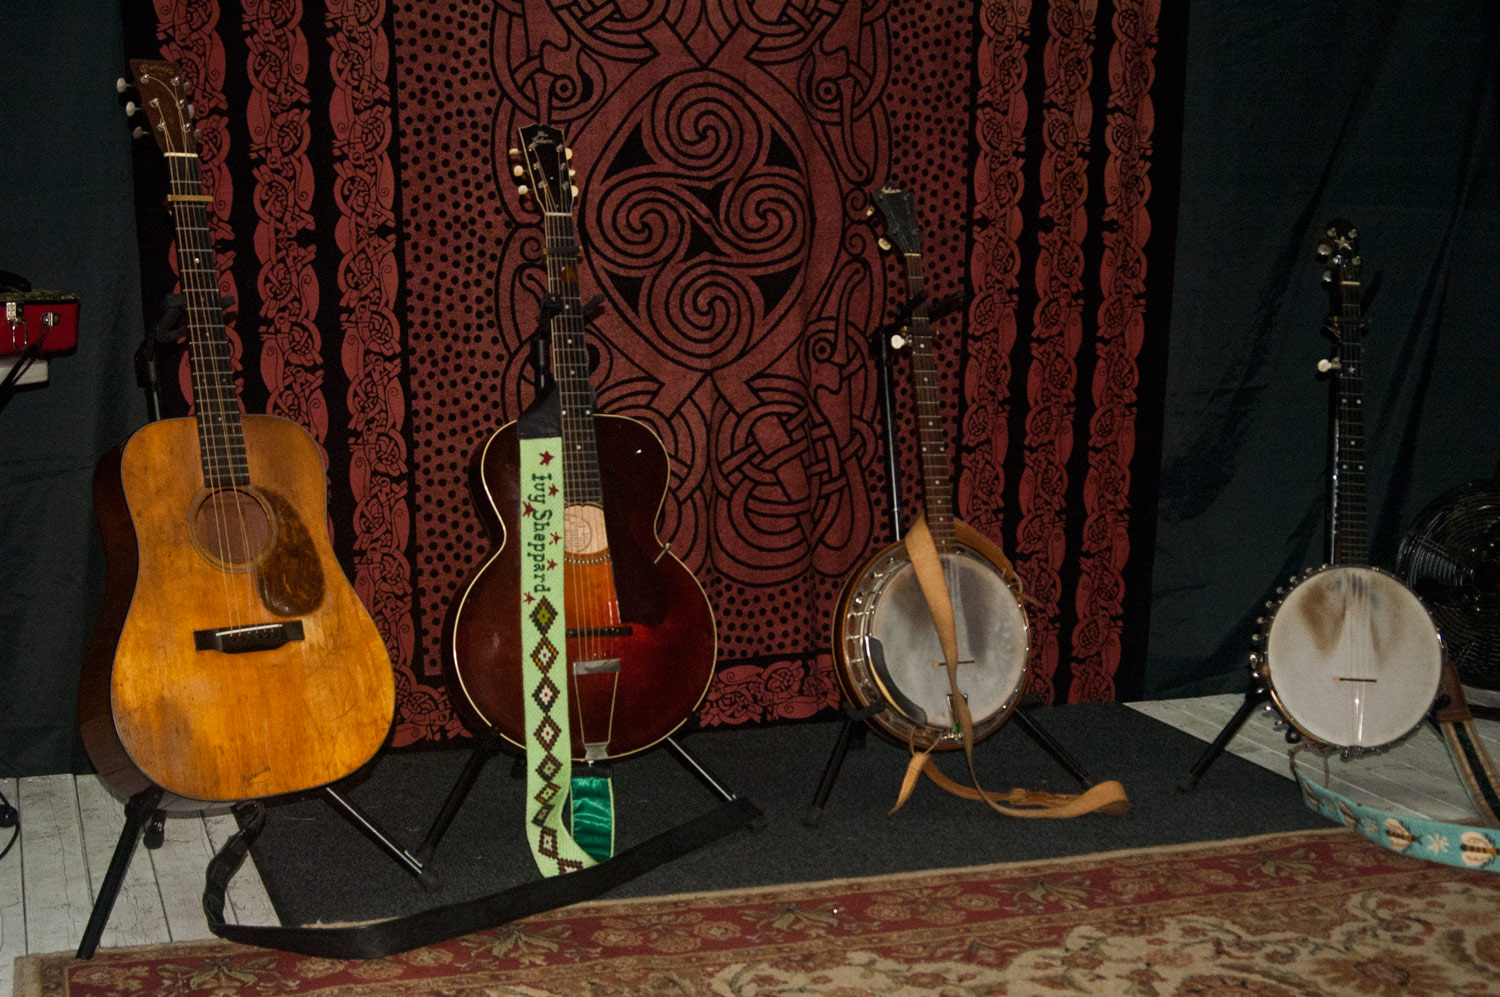 south-carolina-broadcasters-guitars-and-banjo-DSC_2403.jpg